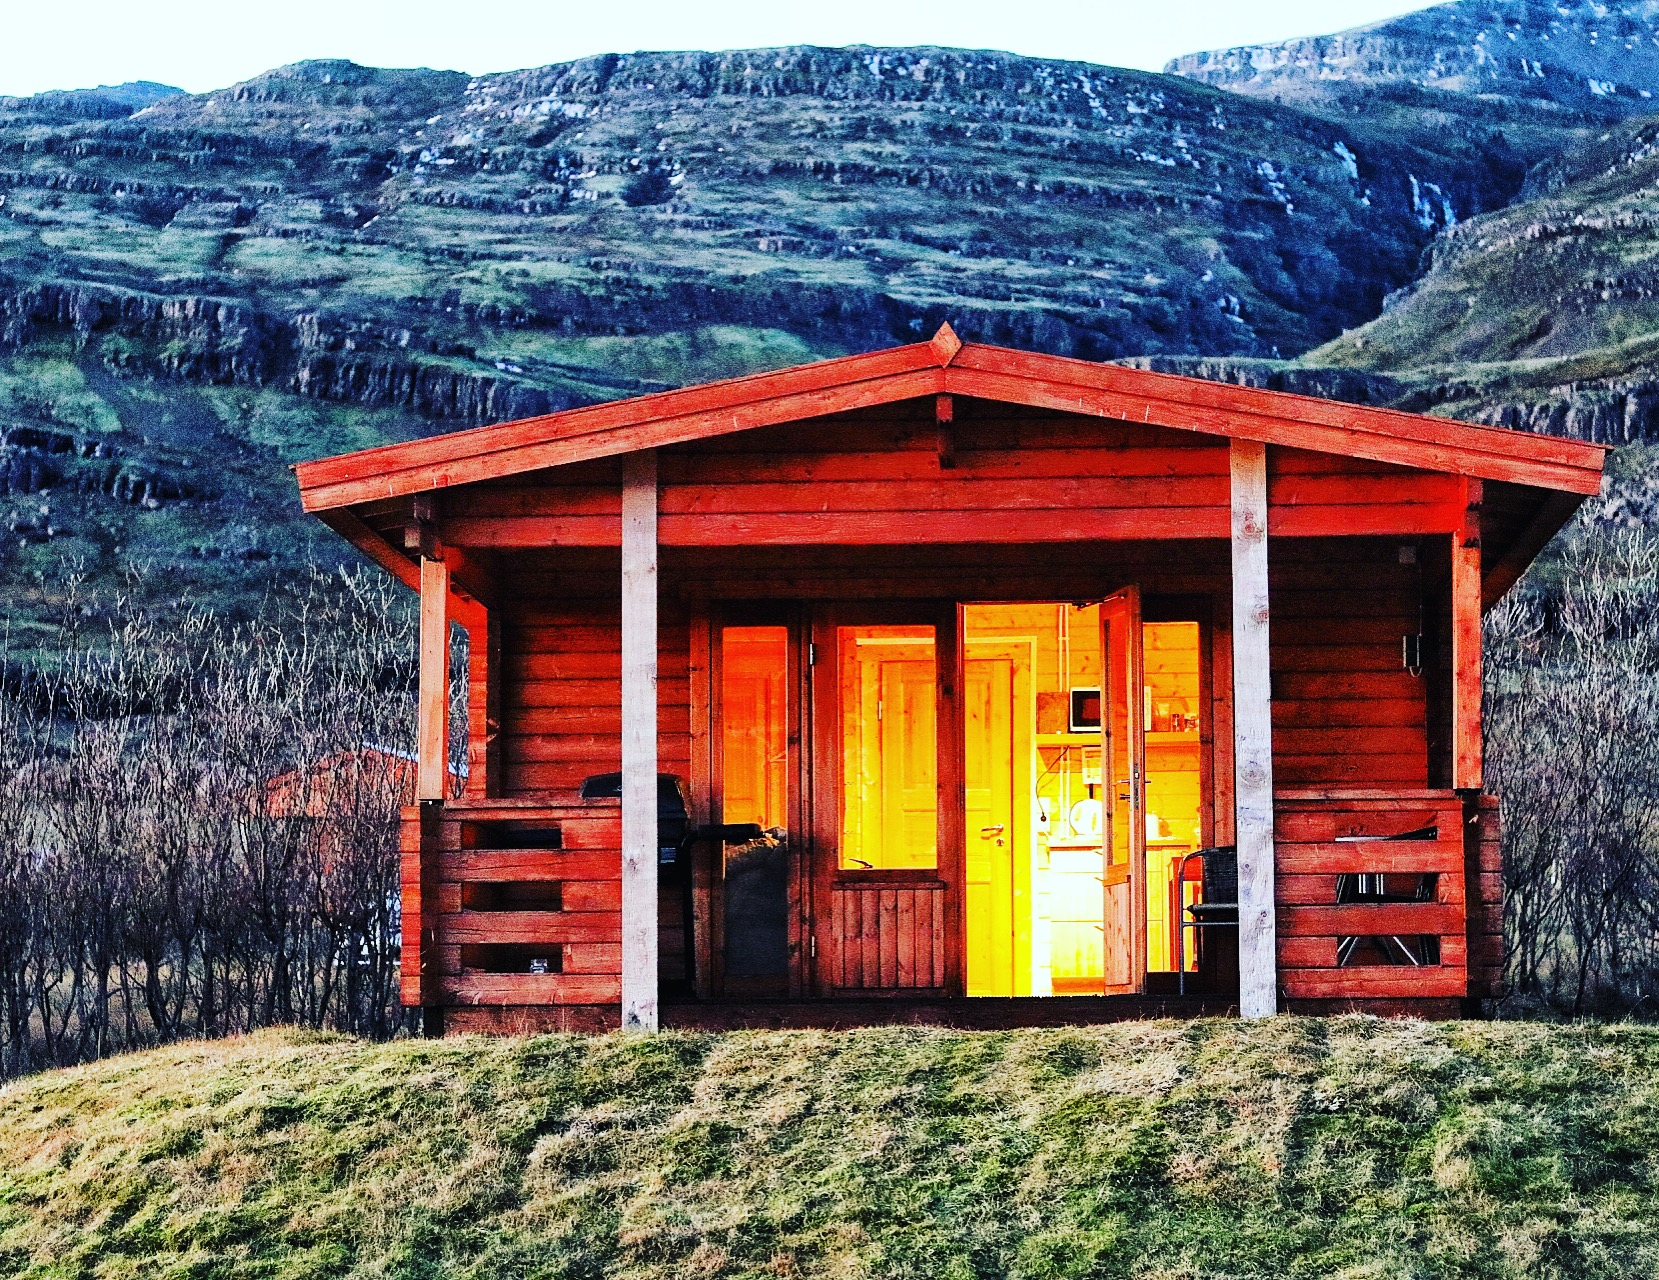 Djupivogur - Beautiful cabin nestled between the mountains and water.